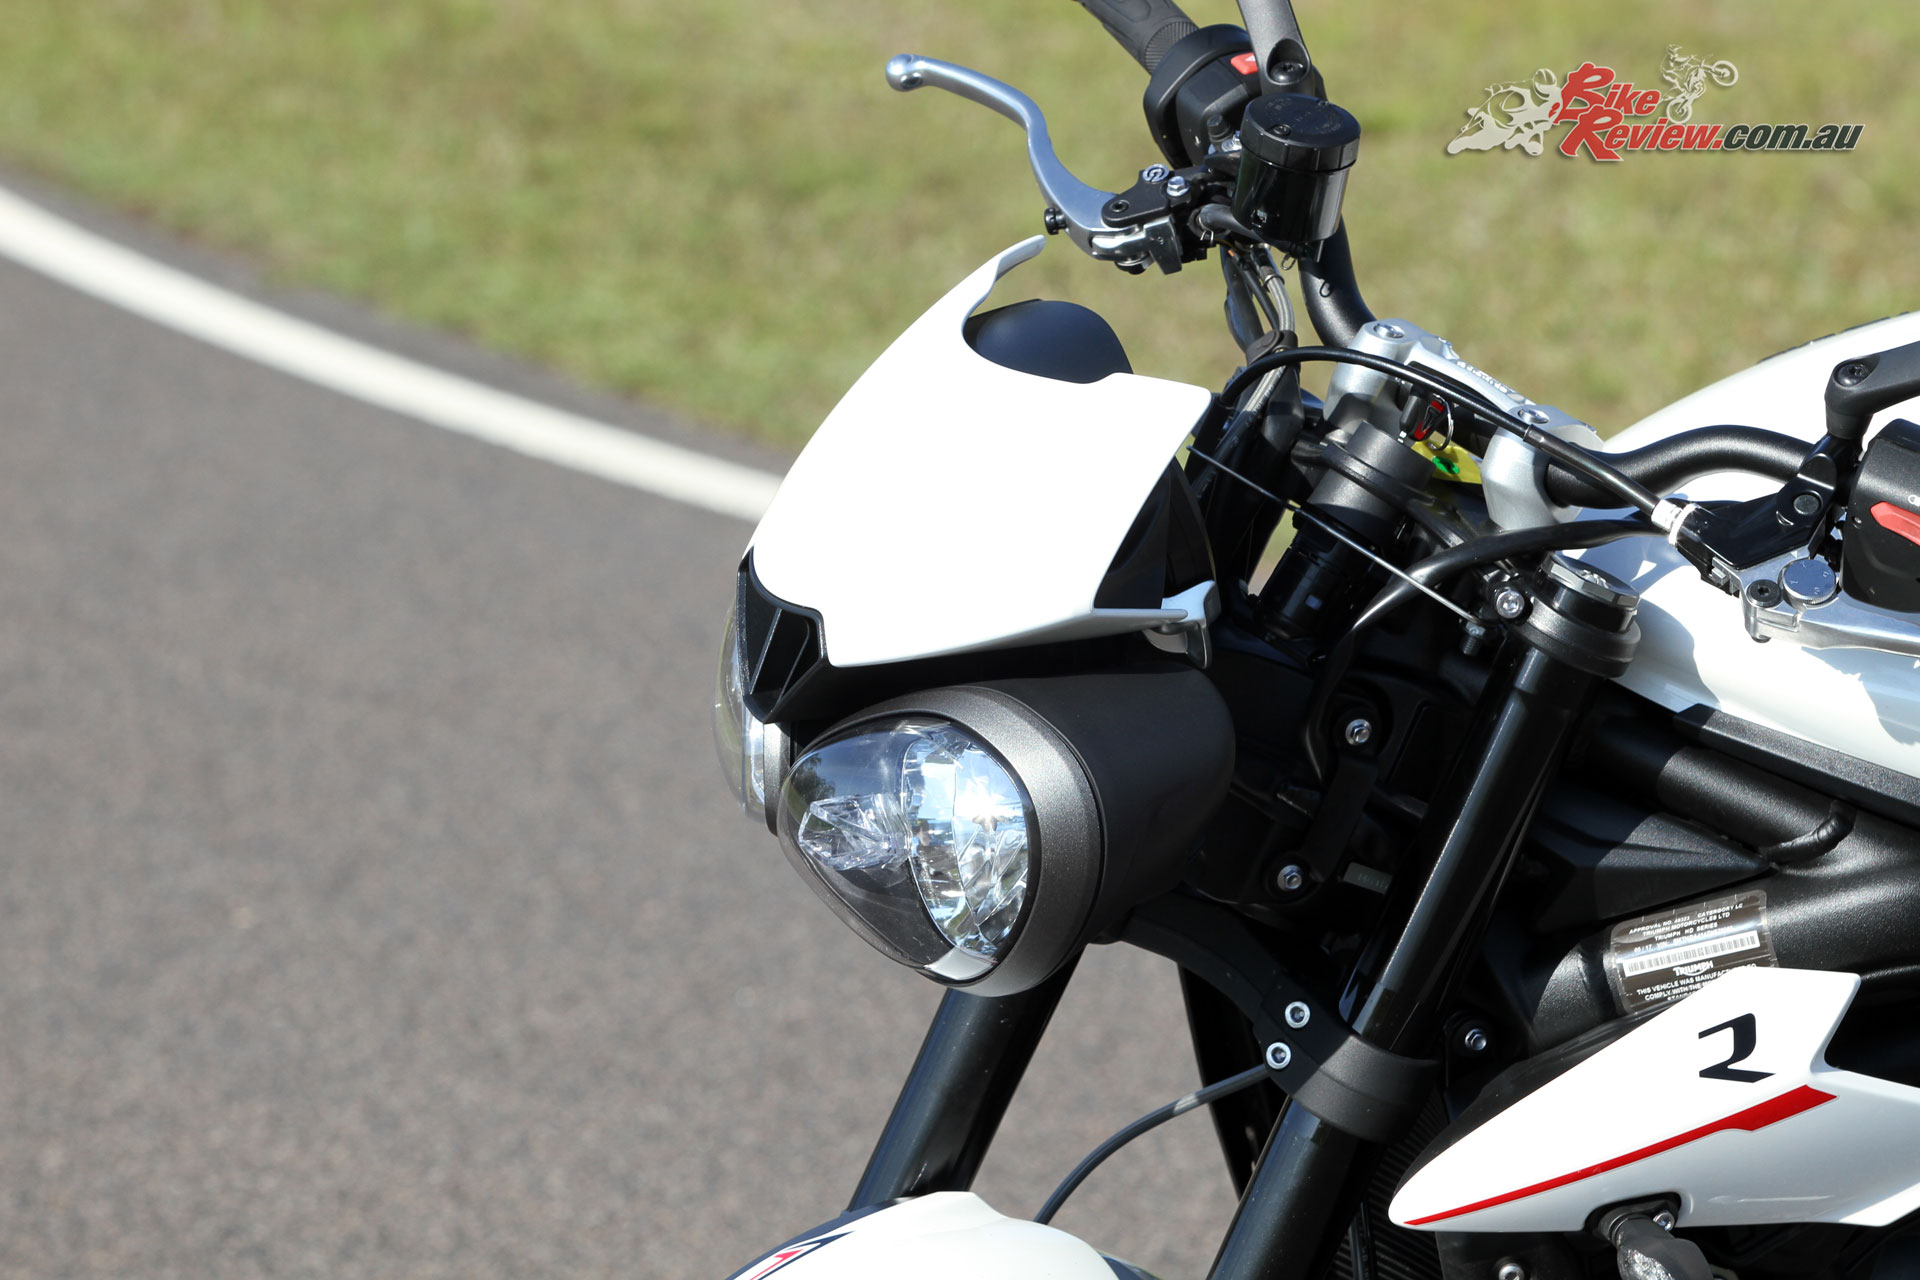 The new headlight cowl and mini-fairings include the 'R' designation and make for clean lines